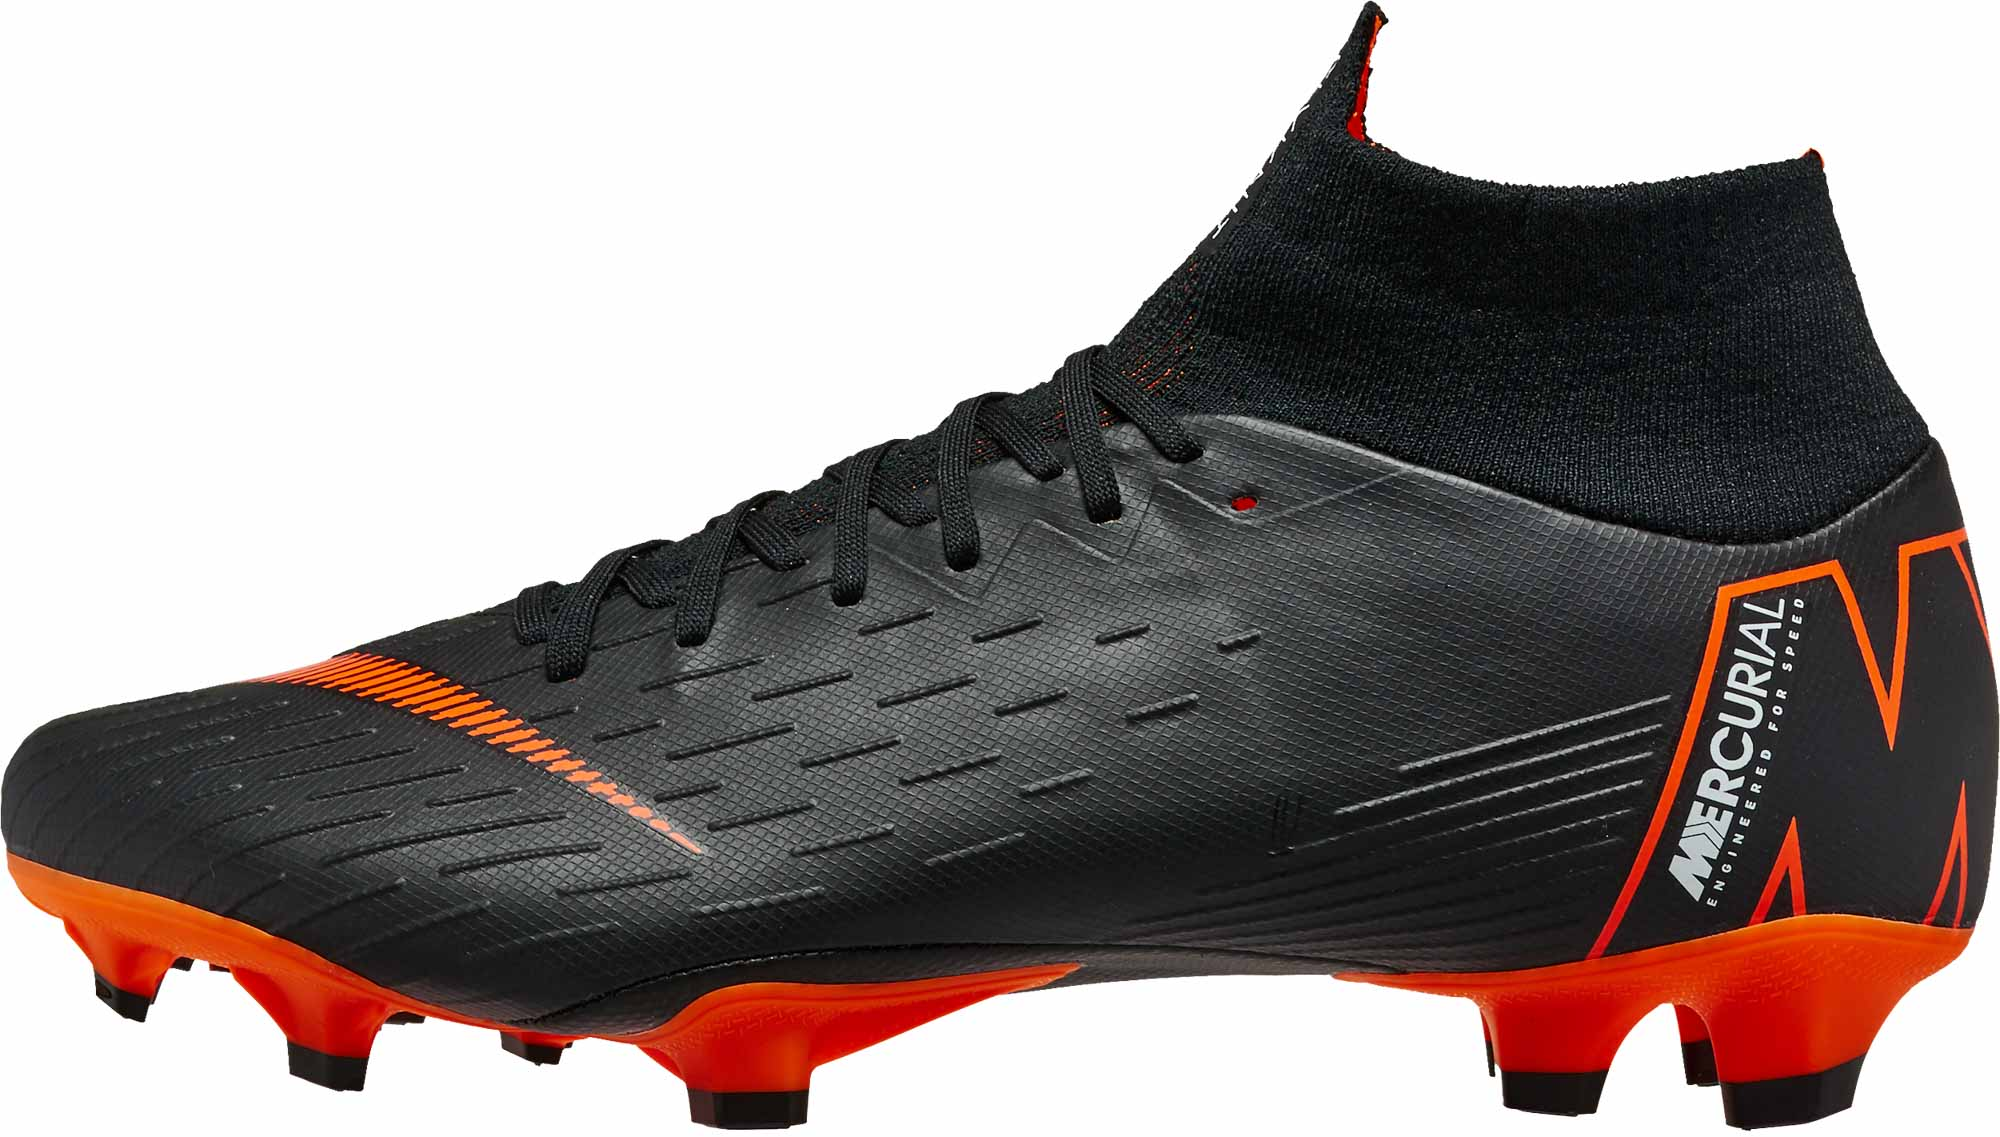 c4f9b6691fbd Nike Superfly 6 Pro FG - Black Total Orange - SoccerPro